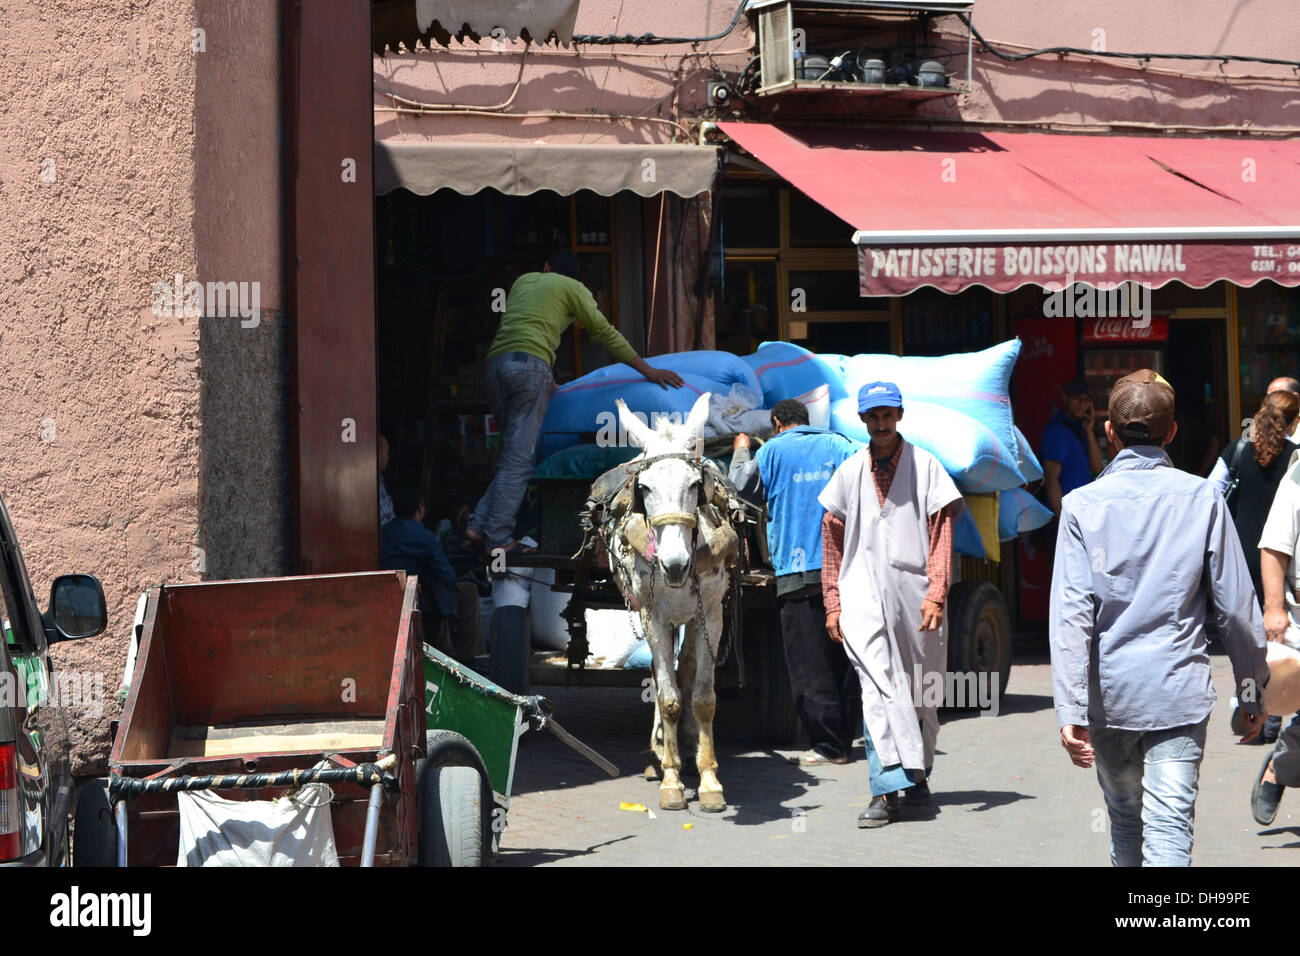 Cart being loaded with goods, ready for the donkey to pull it. - Stock Image